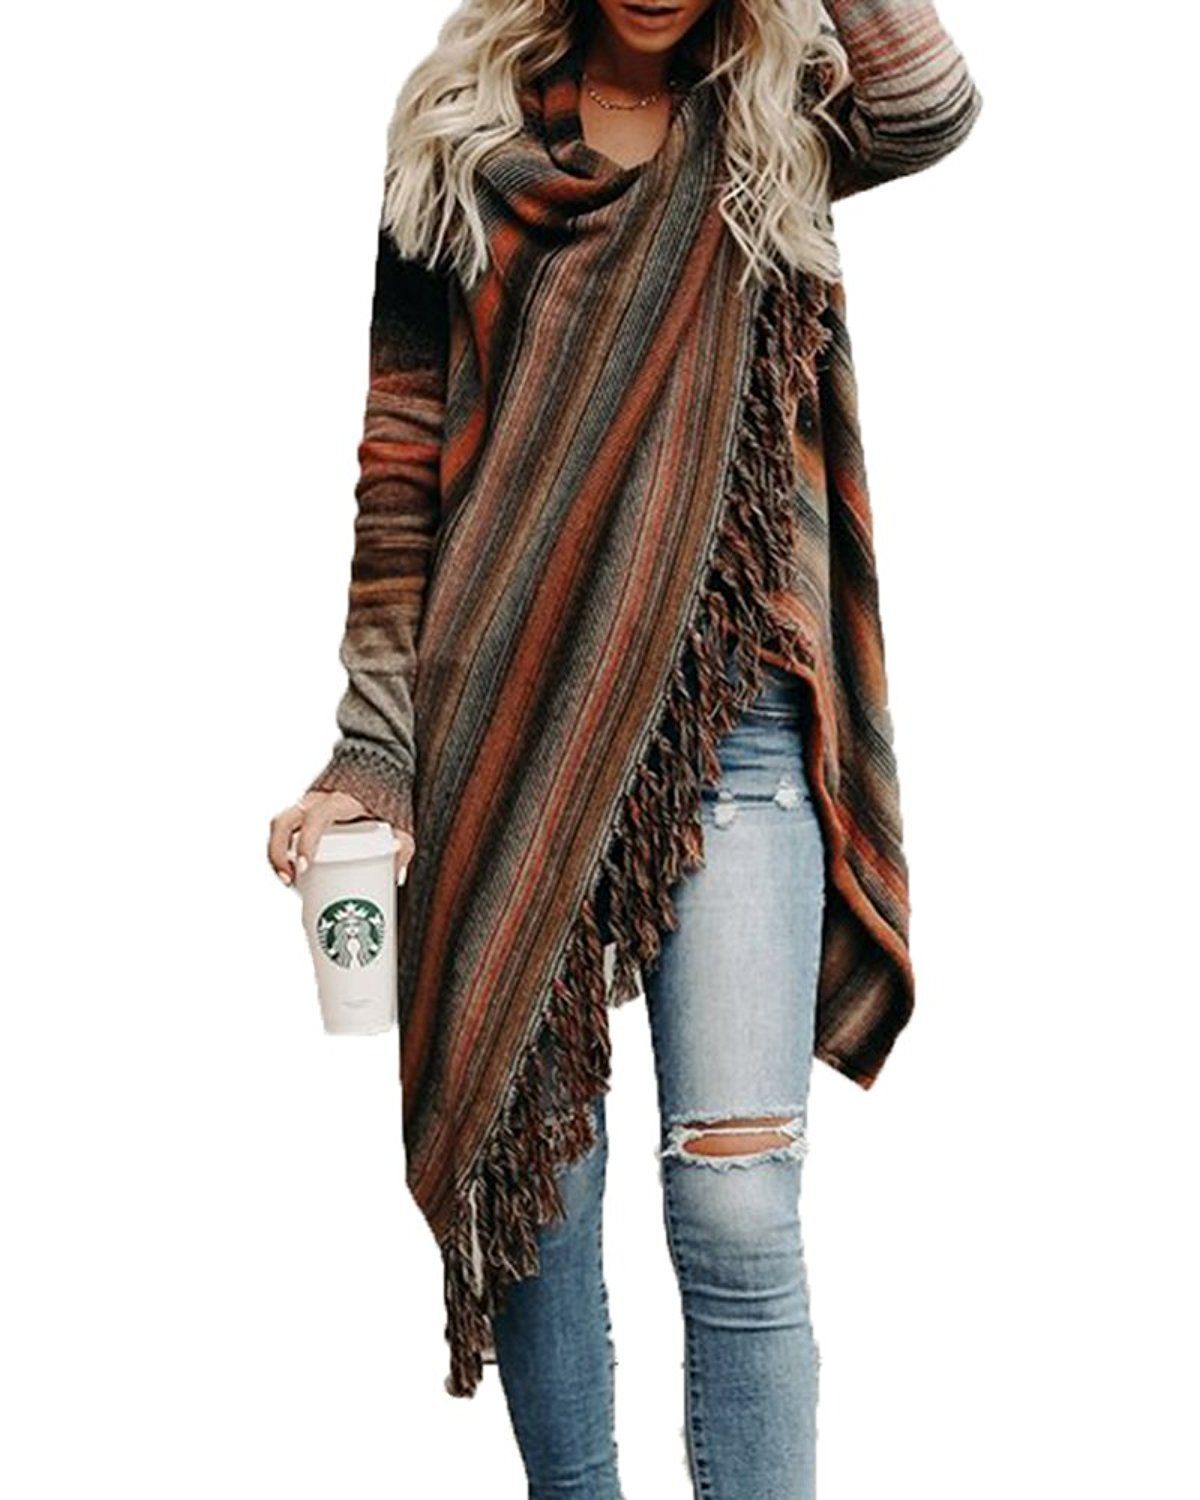 Sweetnight Women's Casual Tassel Cardigan Cowl Neck Knited Tassels Slash Sweaters Asymmetric Hem Wrap Poncho Coat Outwear